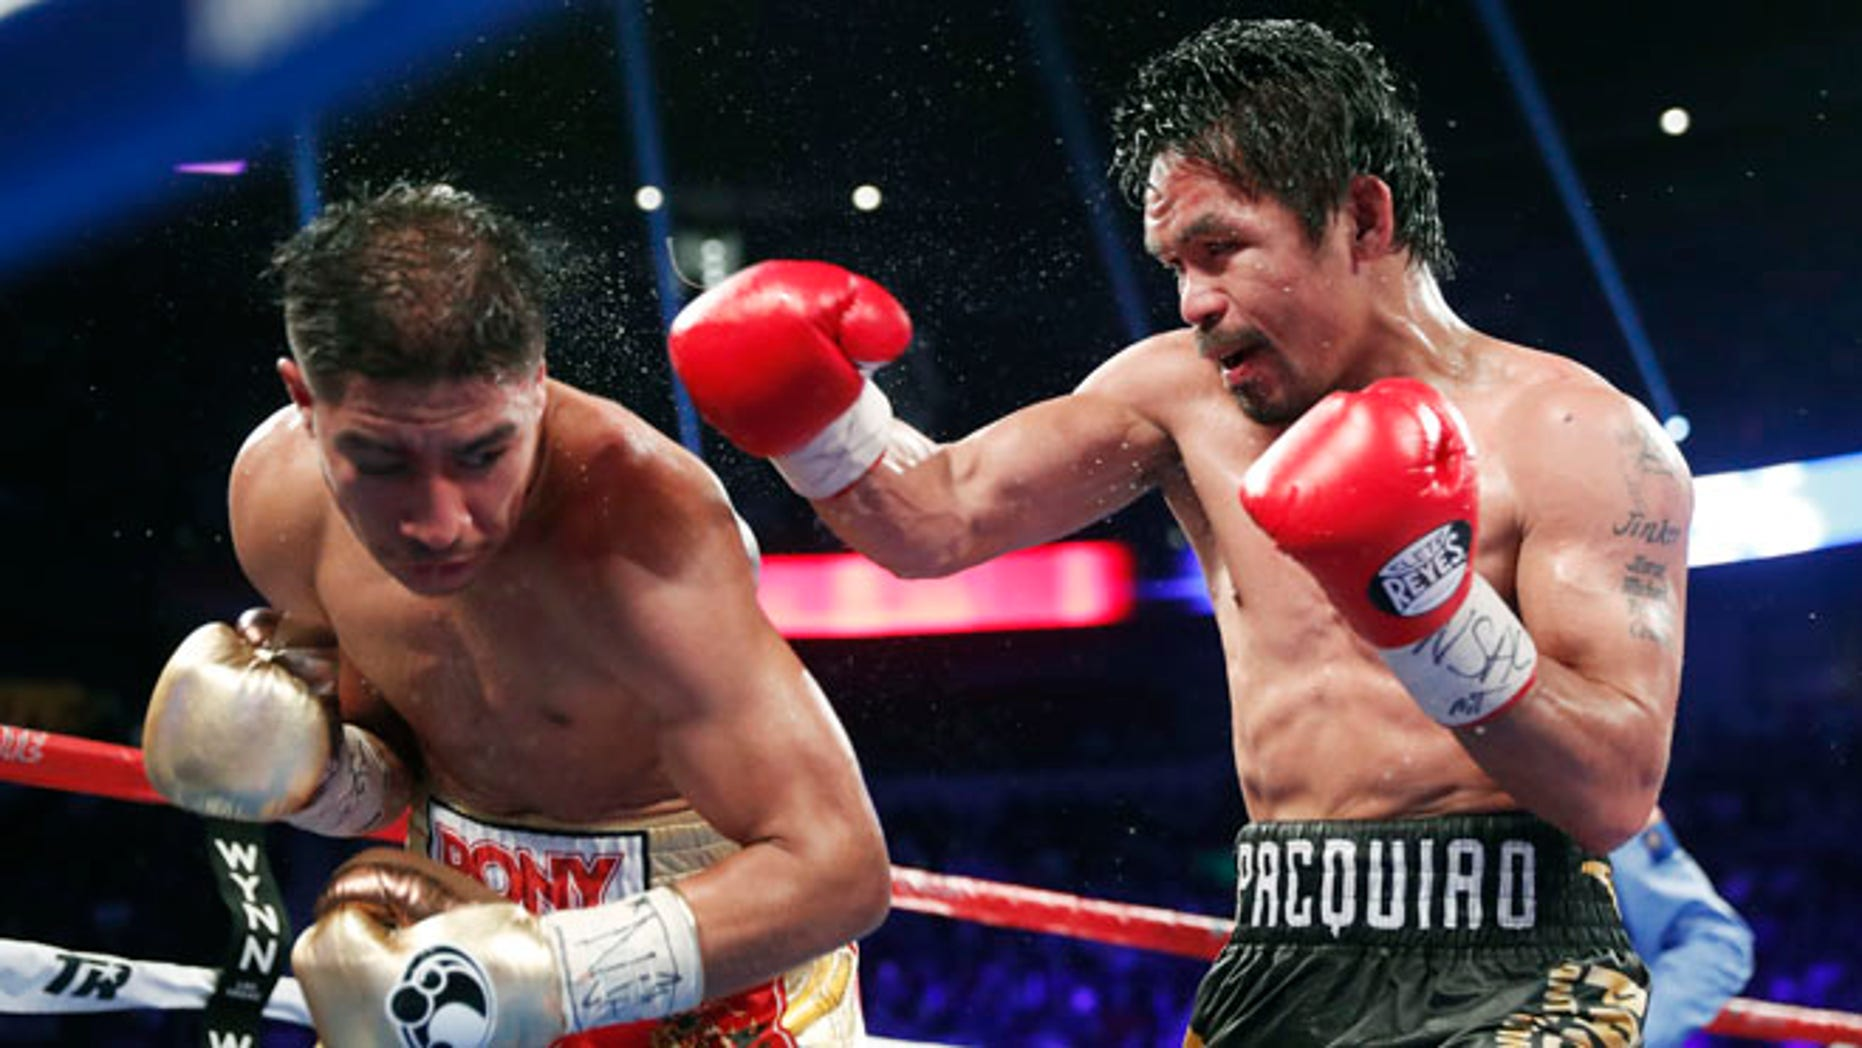 Jessie Vargas, left, tries to avoid a punch from Manny Pacquiao, of the Philippines, during their WBO welterweight title boxing match, Saturday, Nov. 5, 2016, in Las Vegas. (AP Photo/Isaac Brekken)